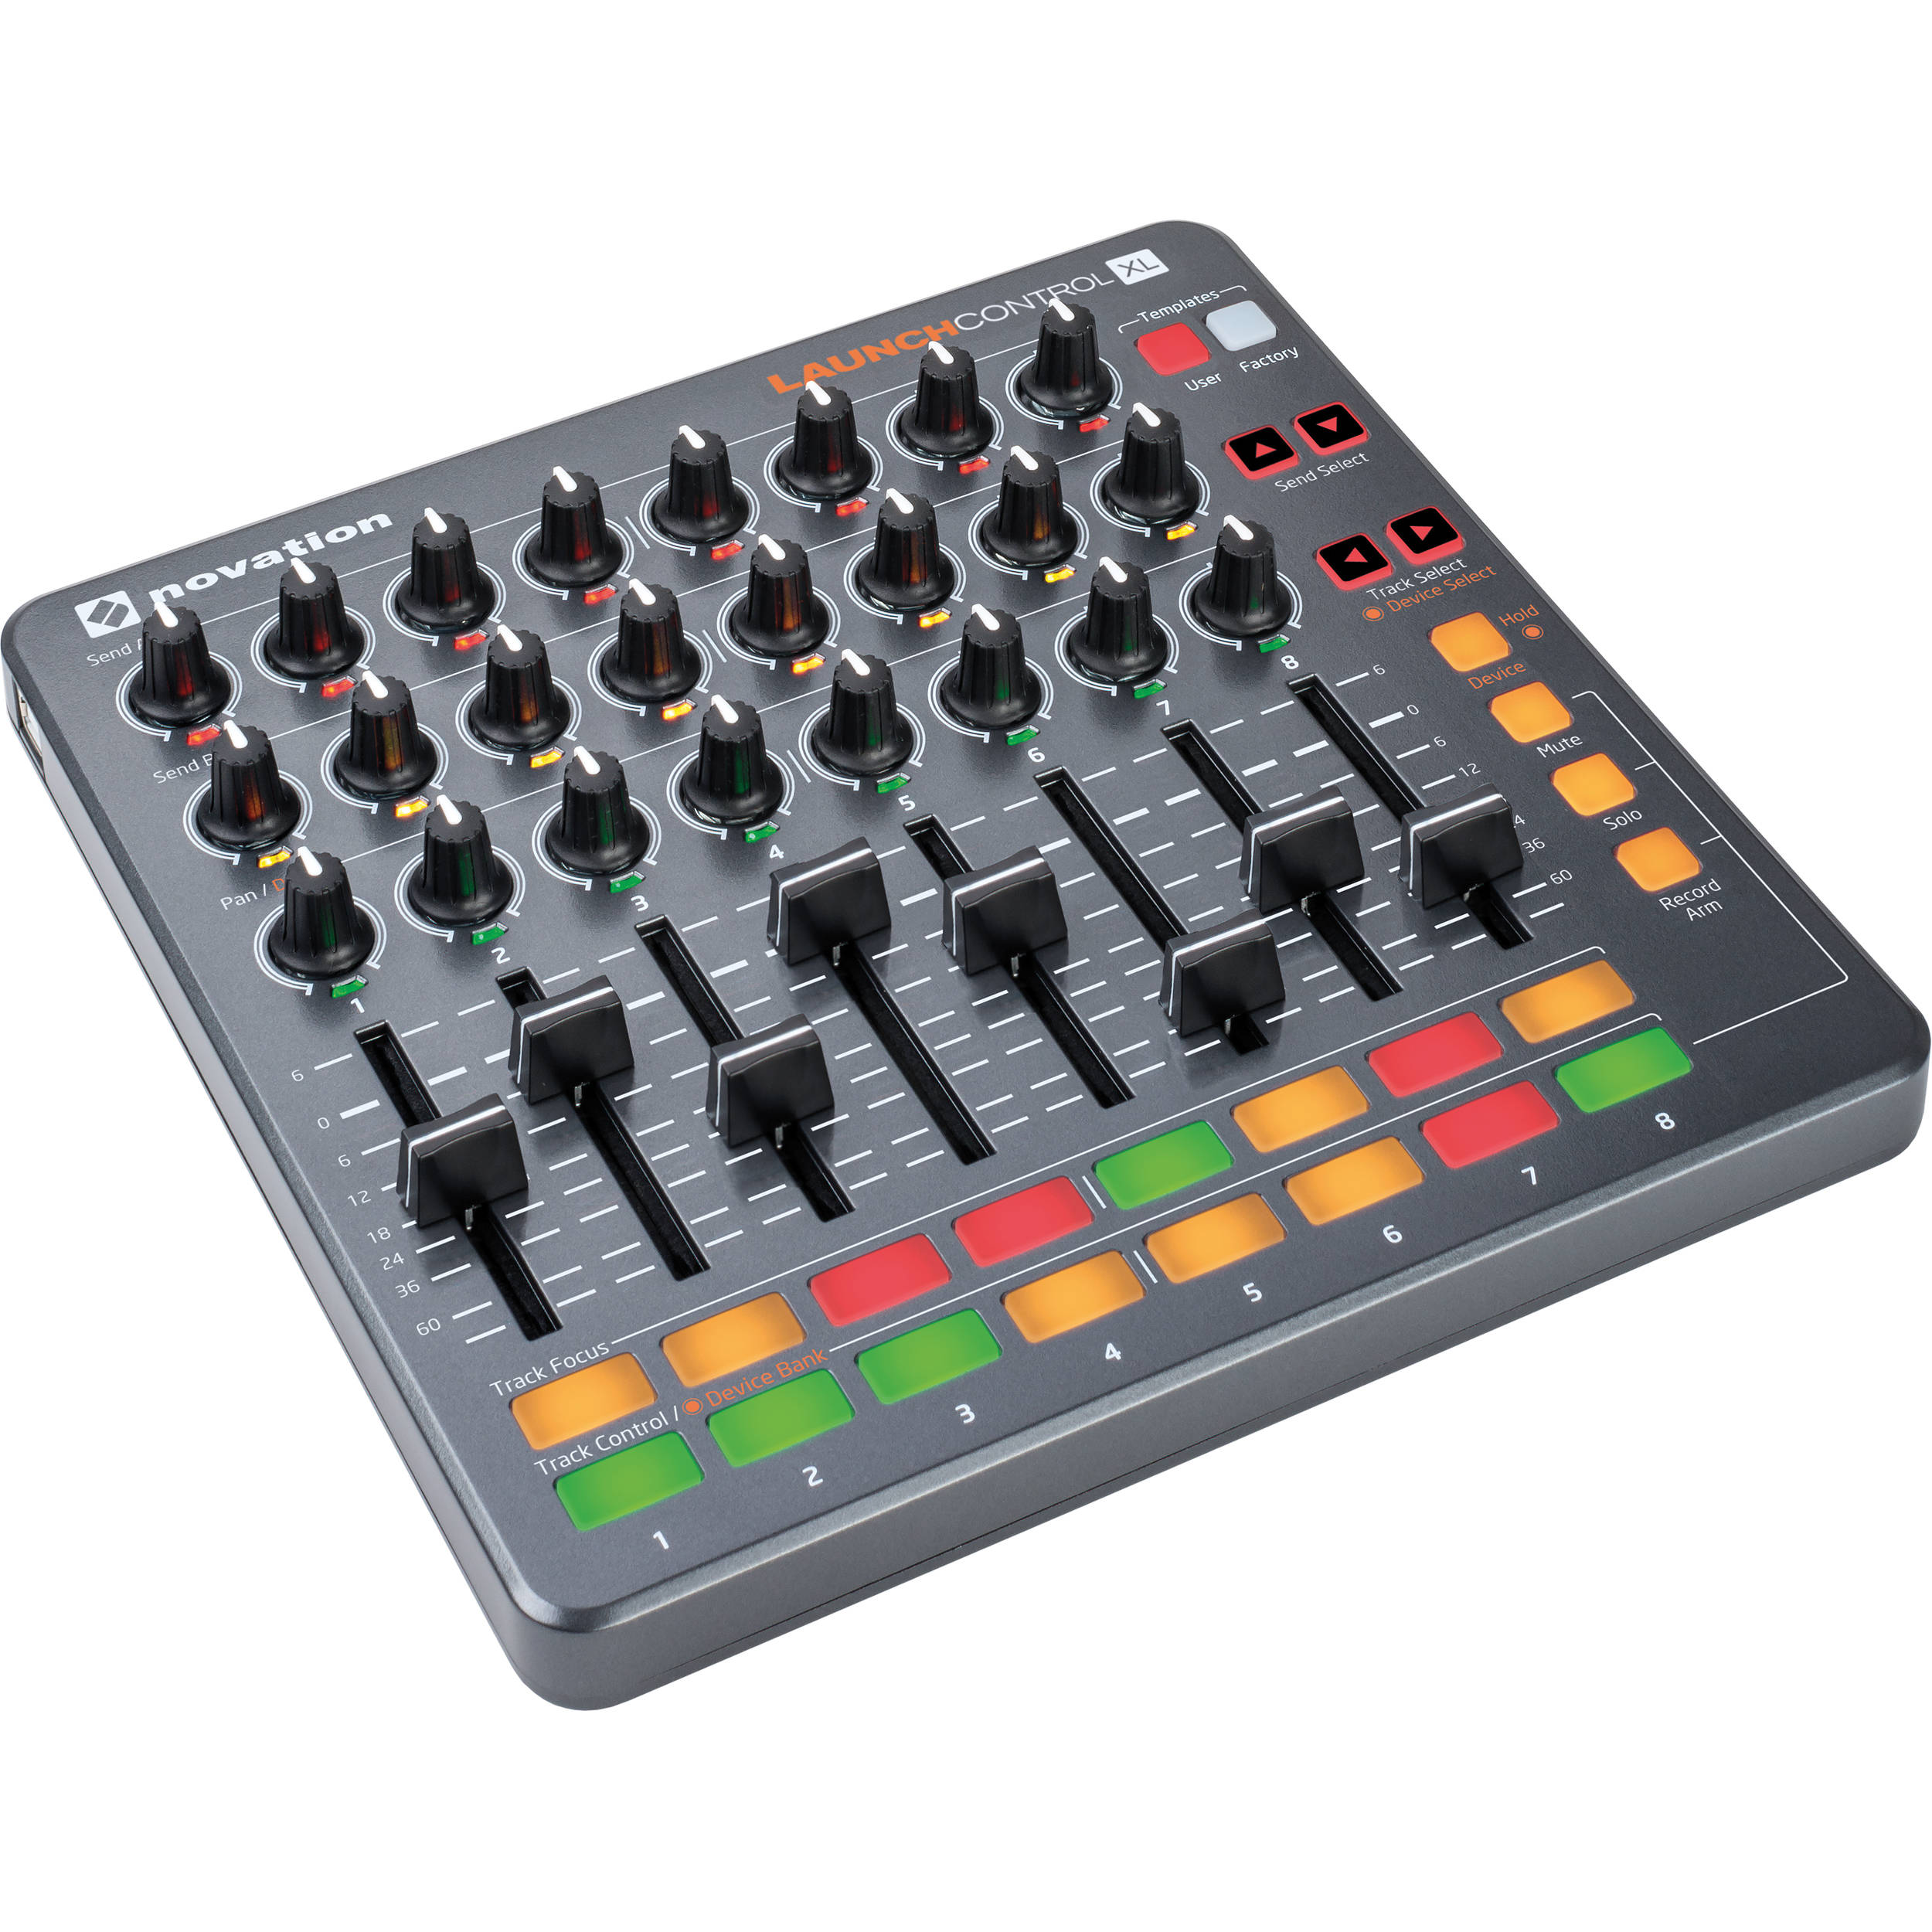 Free delivery and returns on eligible orders of £20 or more. Buy Novation Launchpad Mk2 Ableton Live MIDI Controller at Amazon tenbadownload.gas: